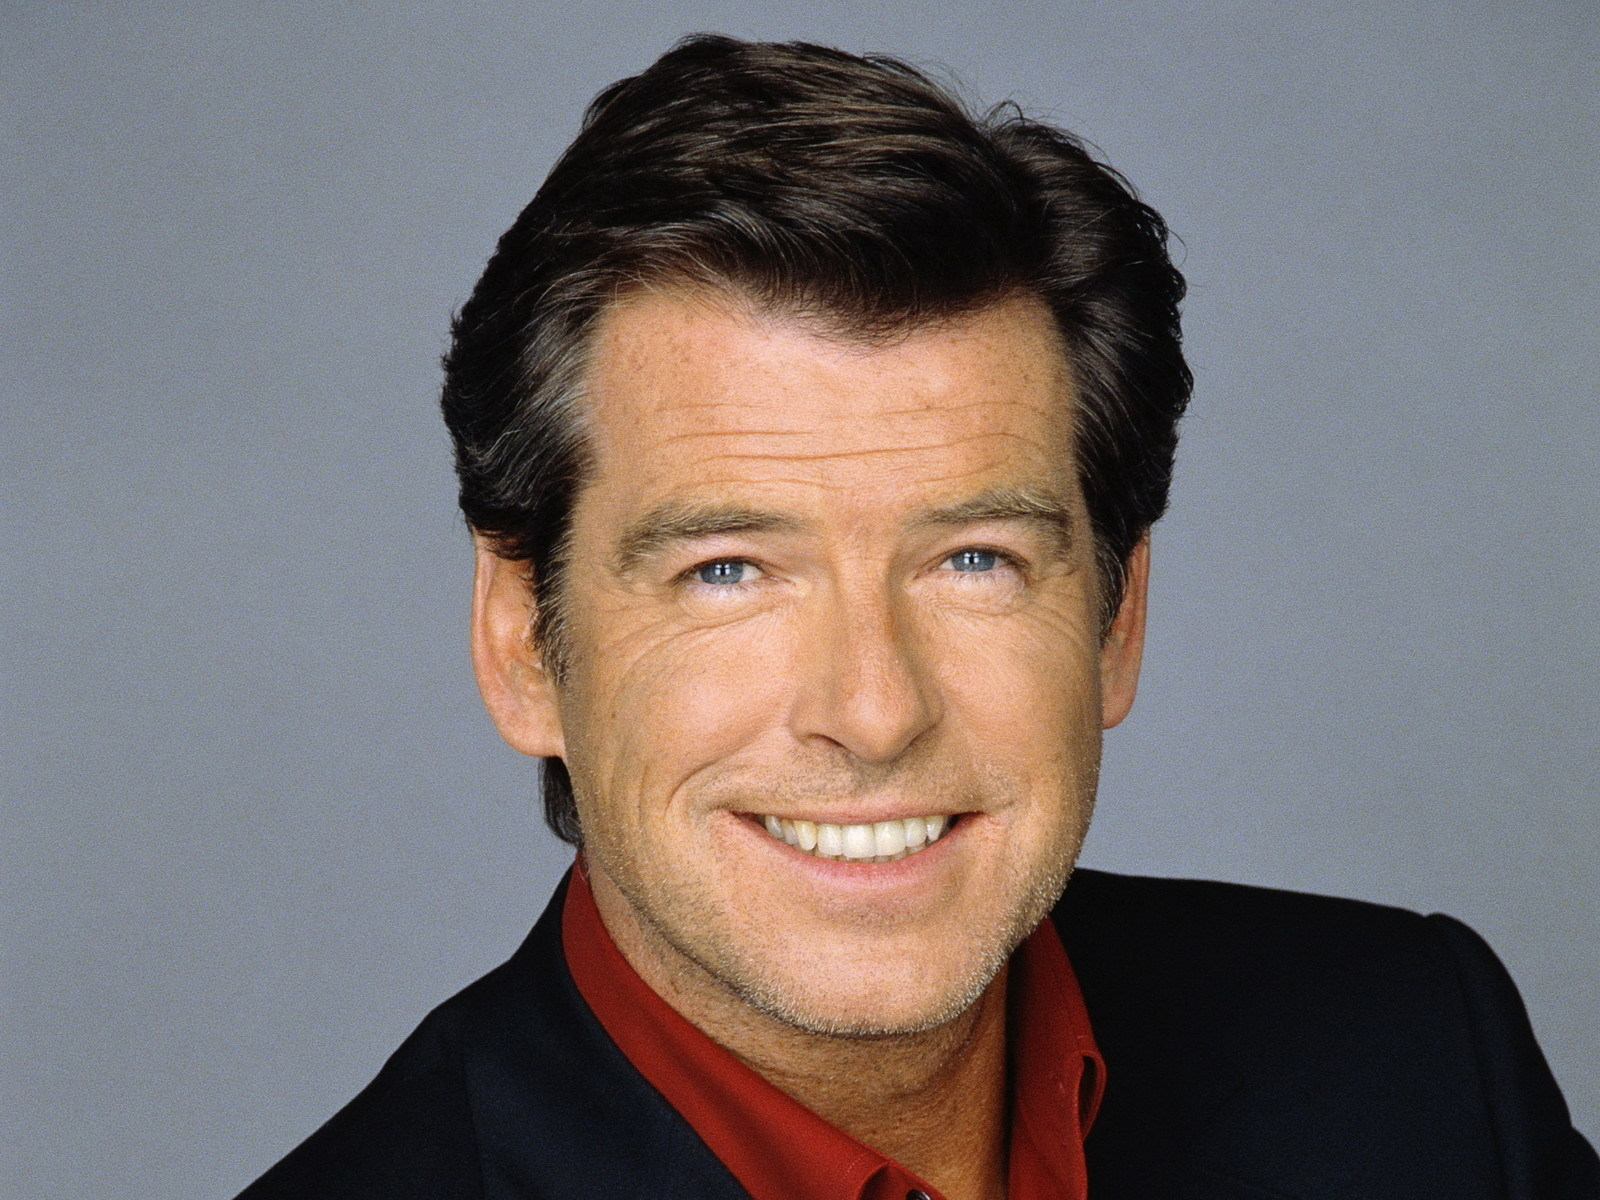 pierce brosnan smile wallpaper 55636